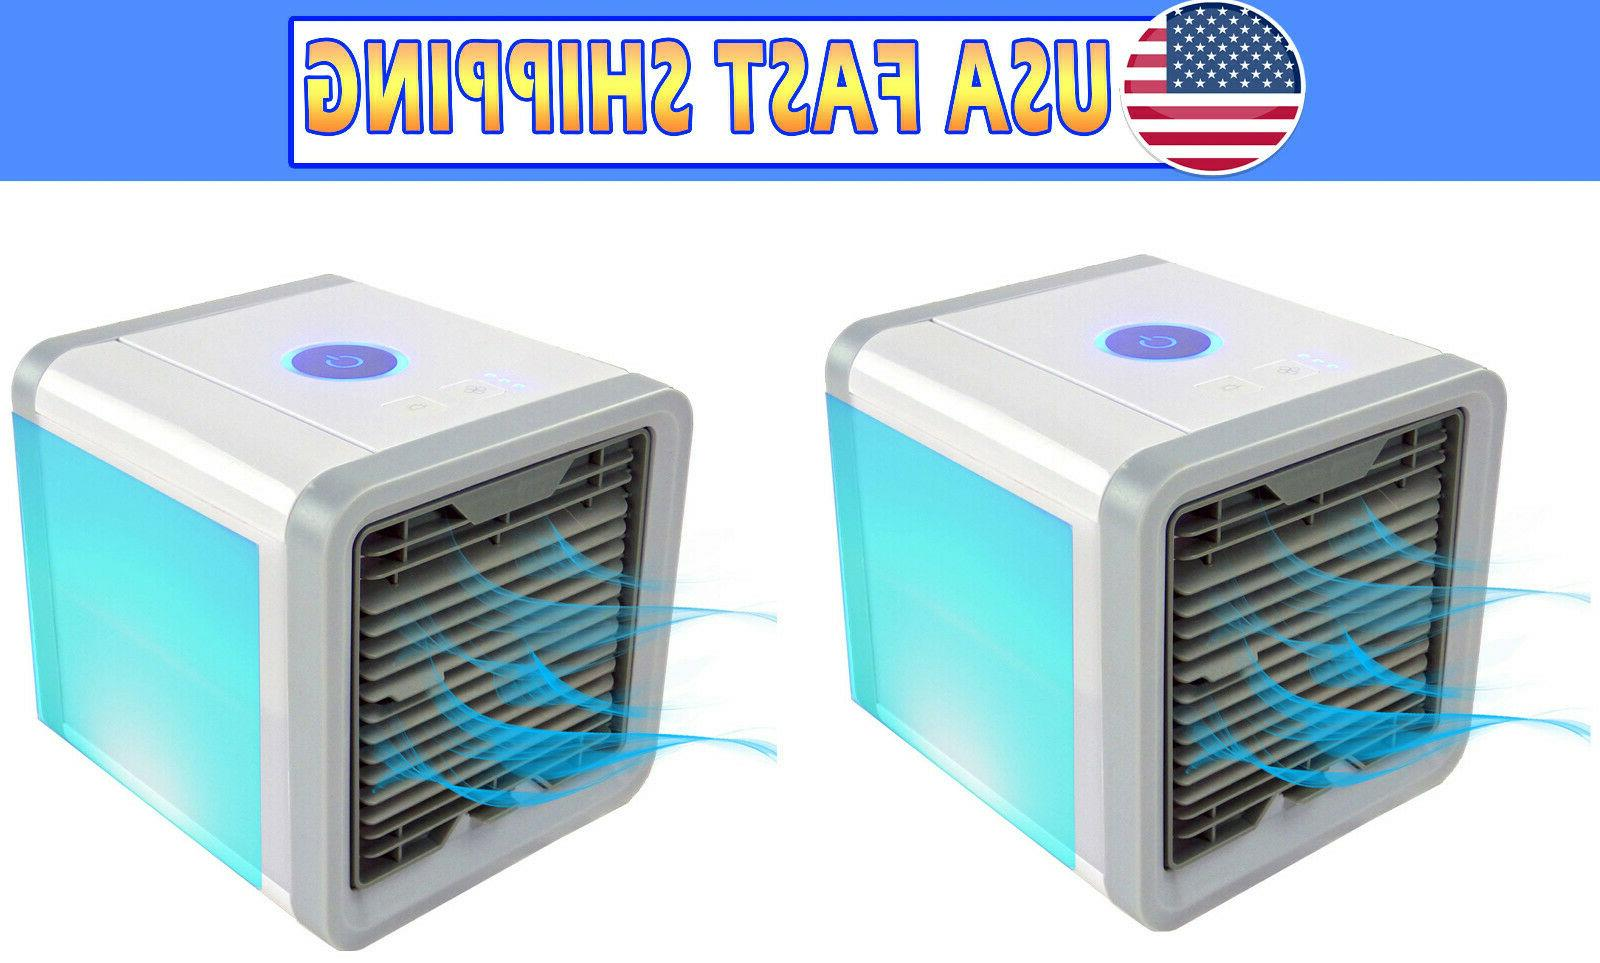 2 personal air conditioner small portable cooler